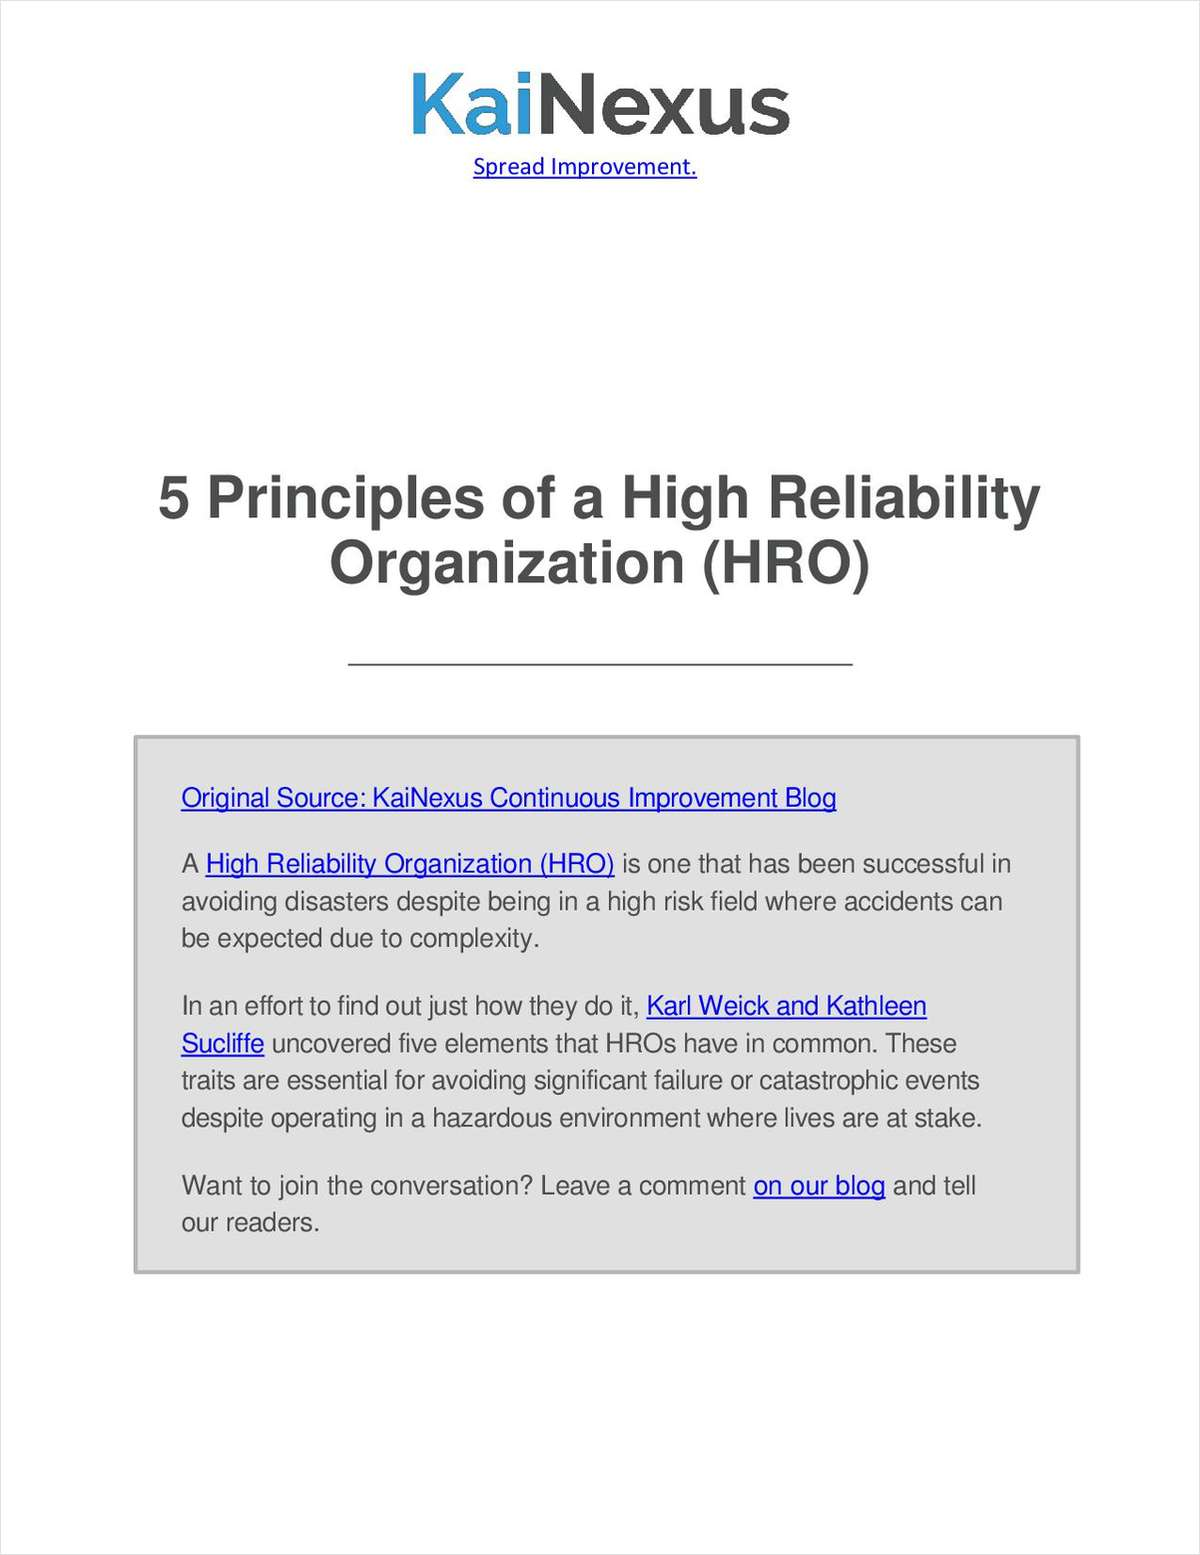 5 Principles of a High Reliability Organization (HRO)